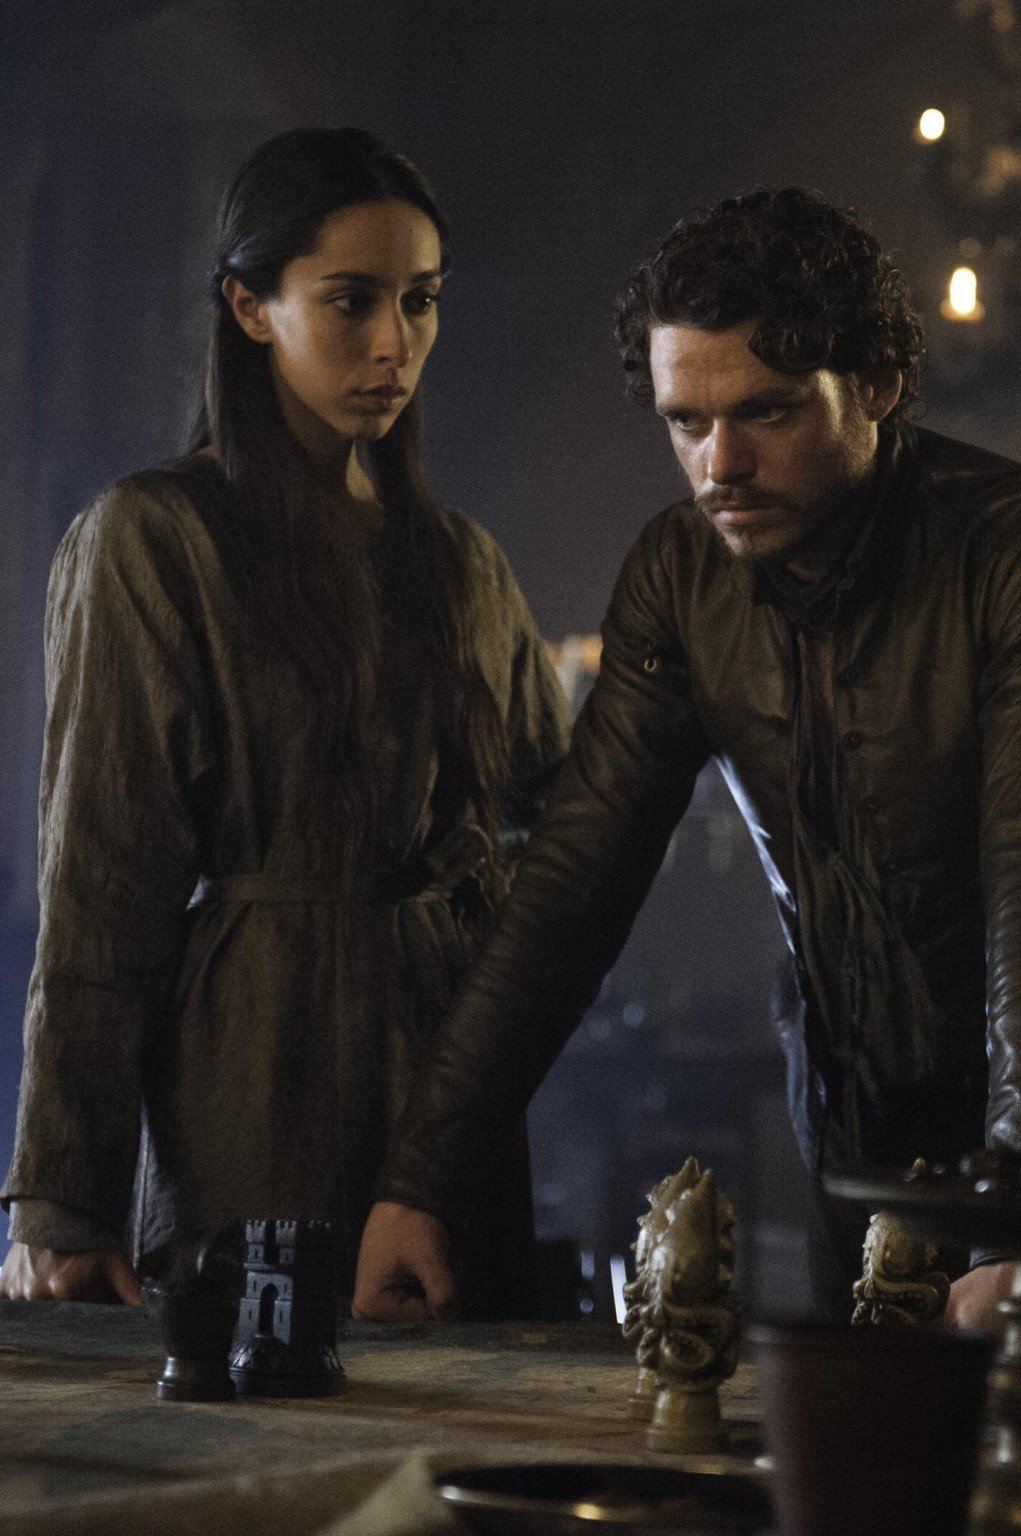 Robb Stark and Jeyne (Sorry, Talisa) Westerling